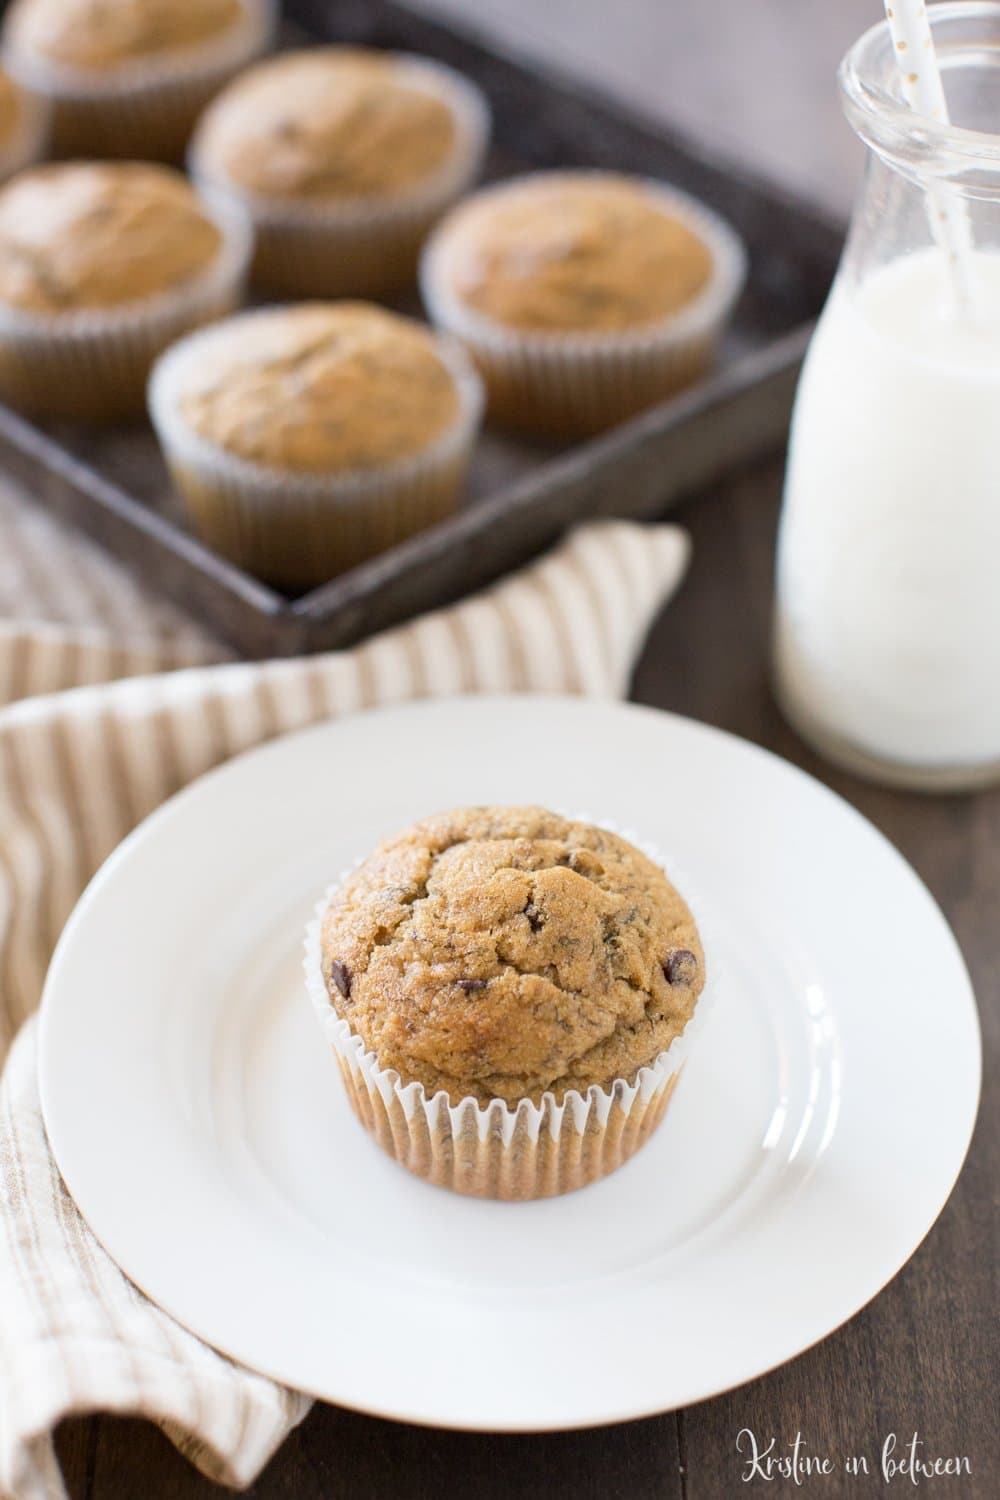 These are the best whole wheat peanut butter banana muffins with chocolate chips!